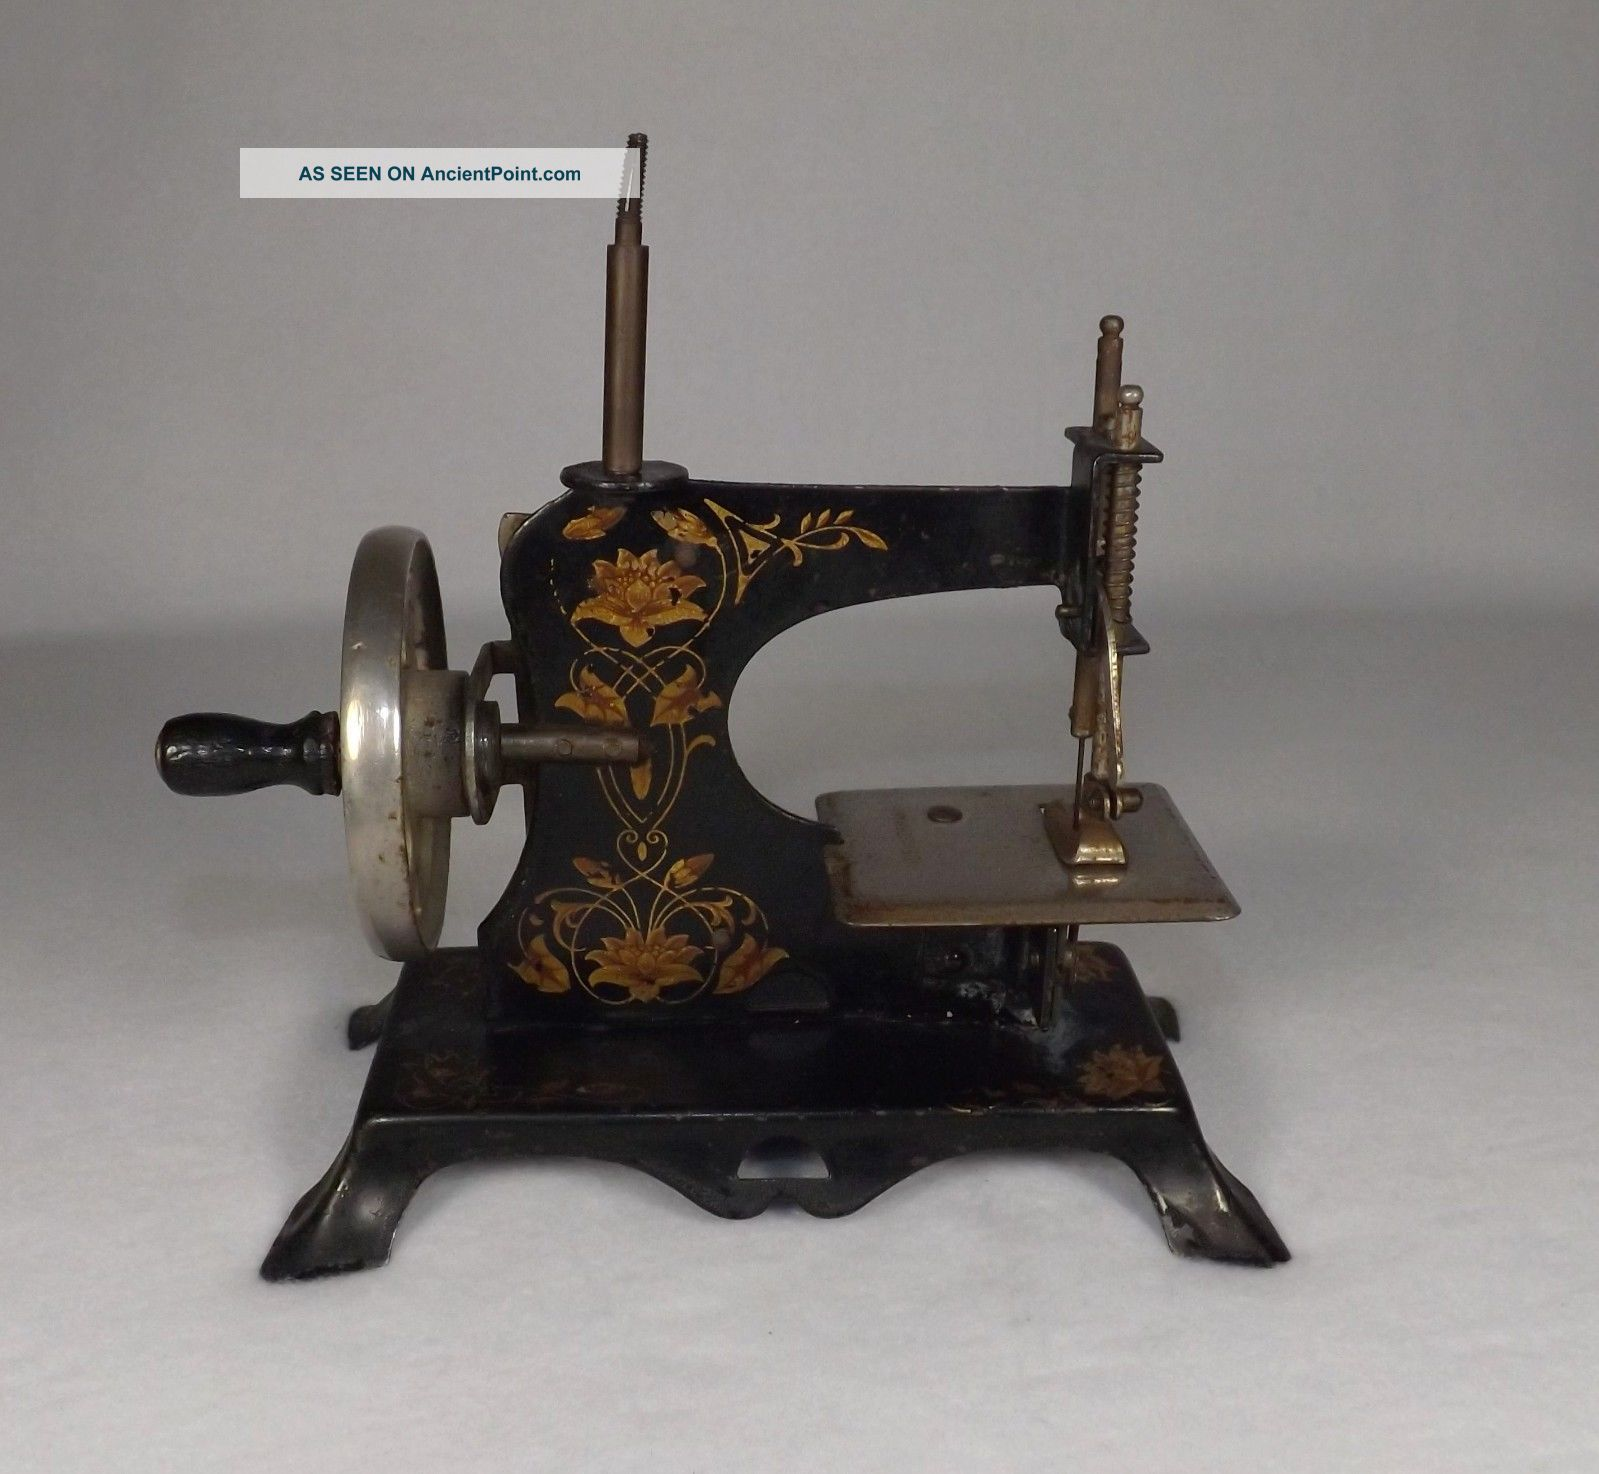 Vintage Antique German Childs Toy Sewing Machine Sewing Machines photo